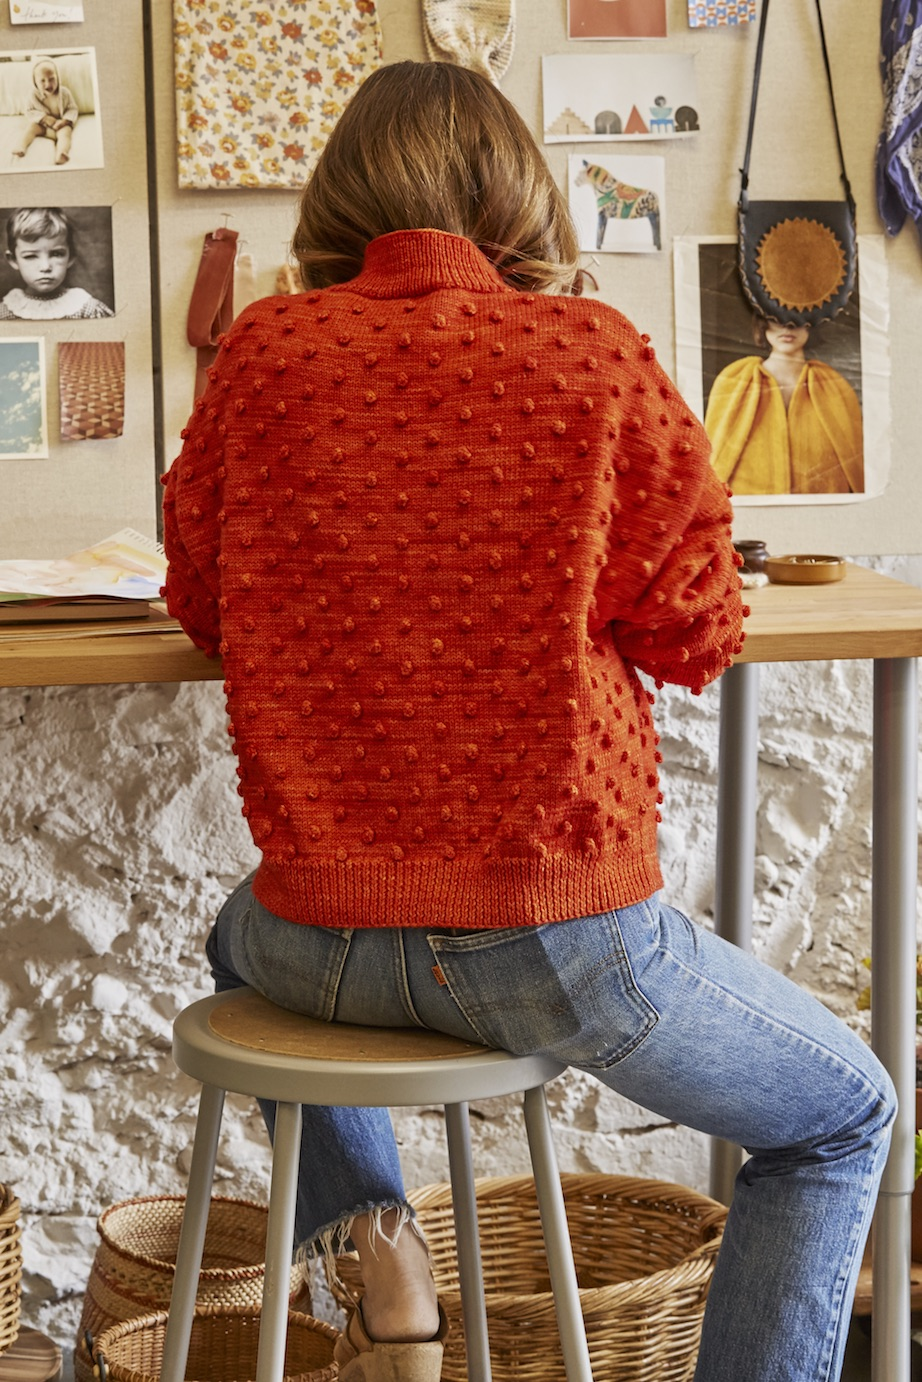 Photo by Susie Cushner for Knit Wit Issue 5